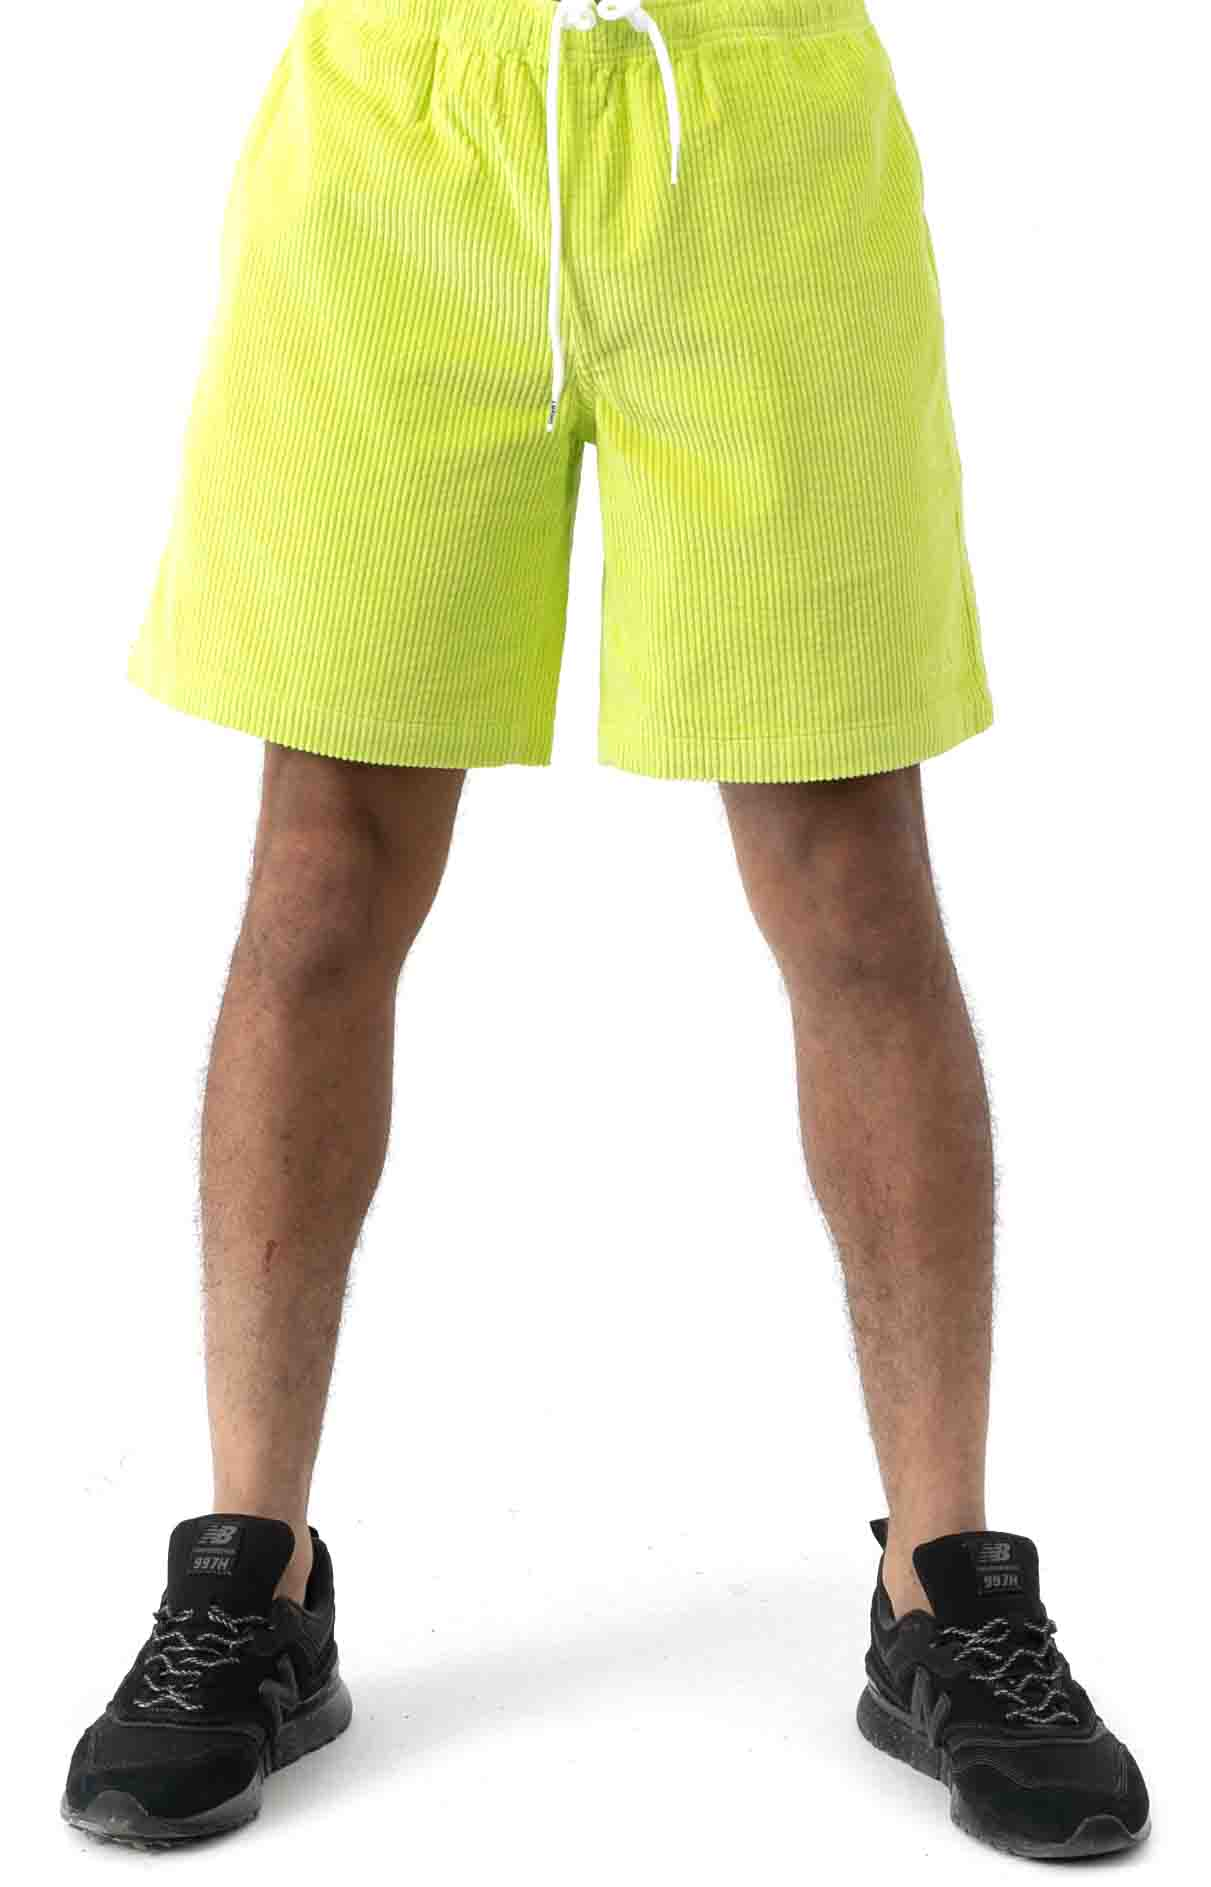 Wide Wale Corduroy Chill Shorts - Neon Green 2